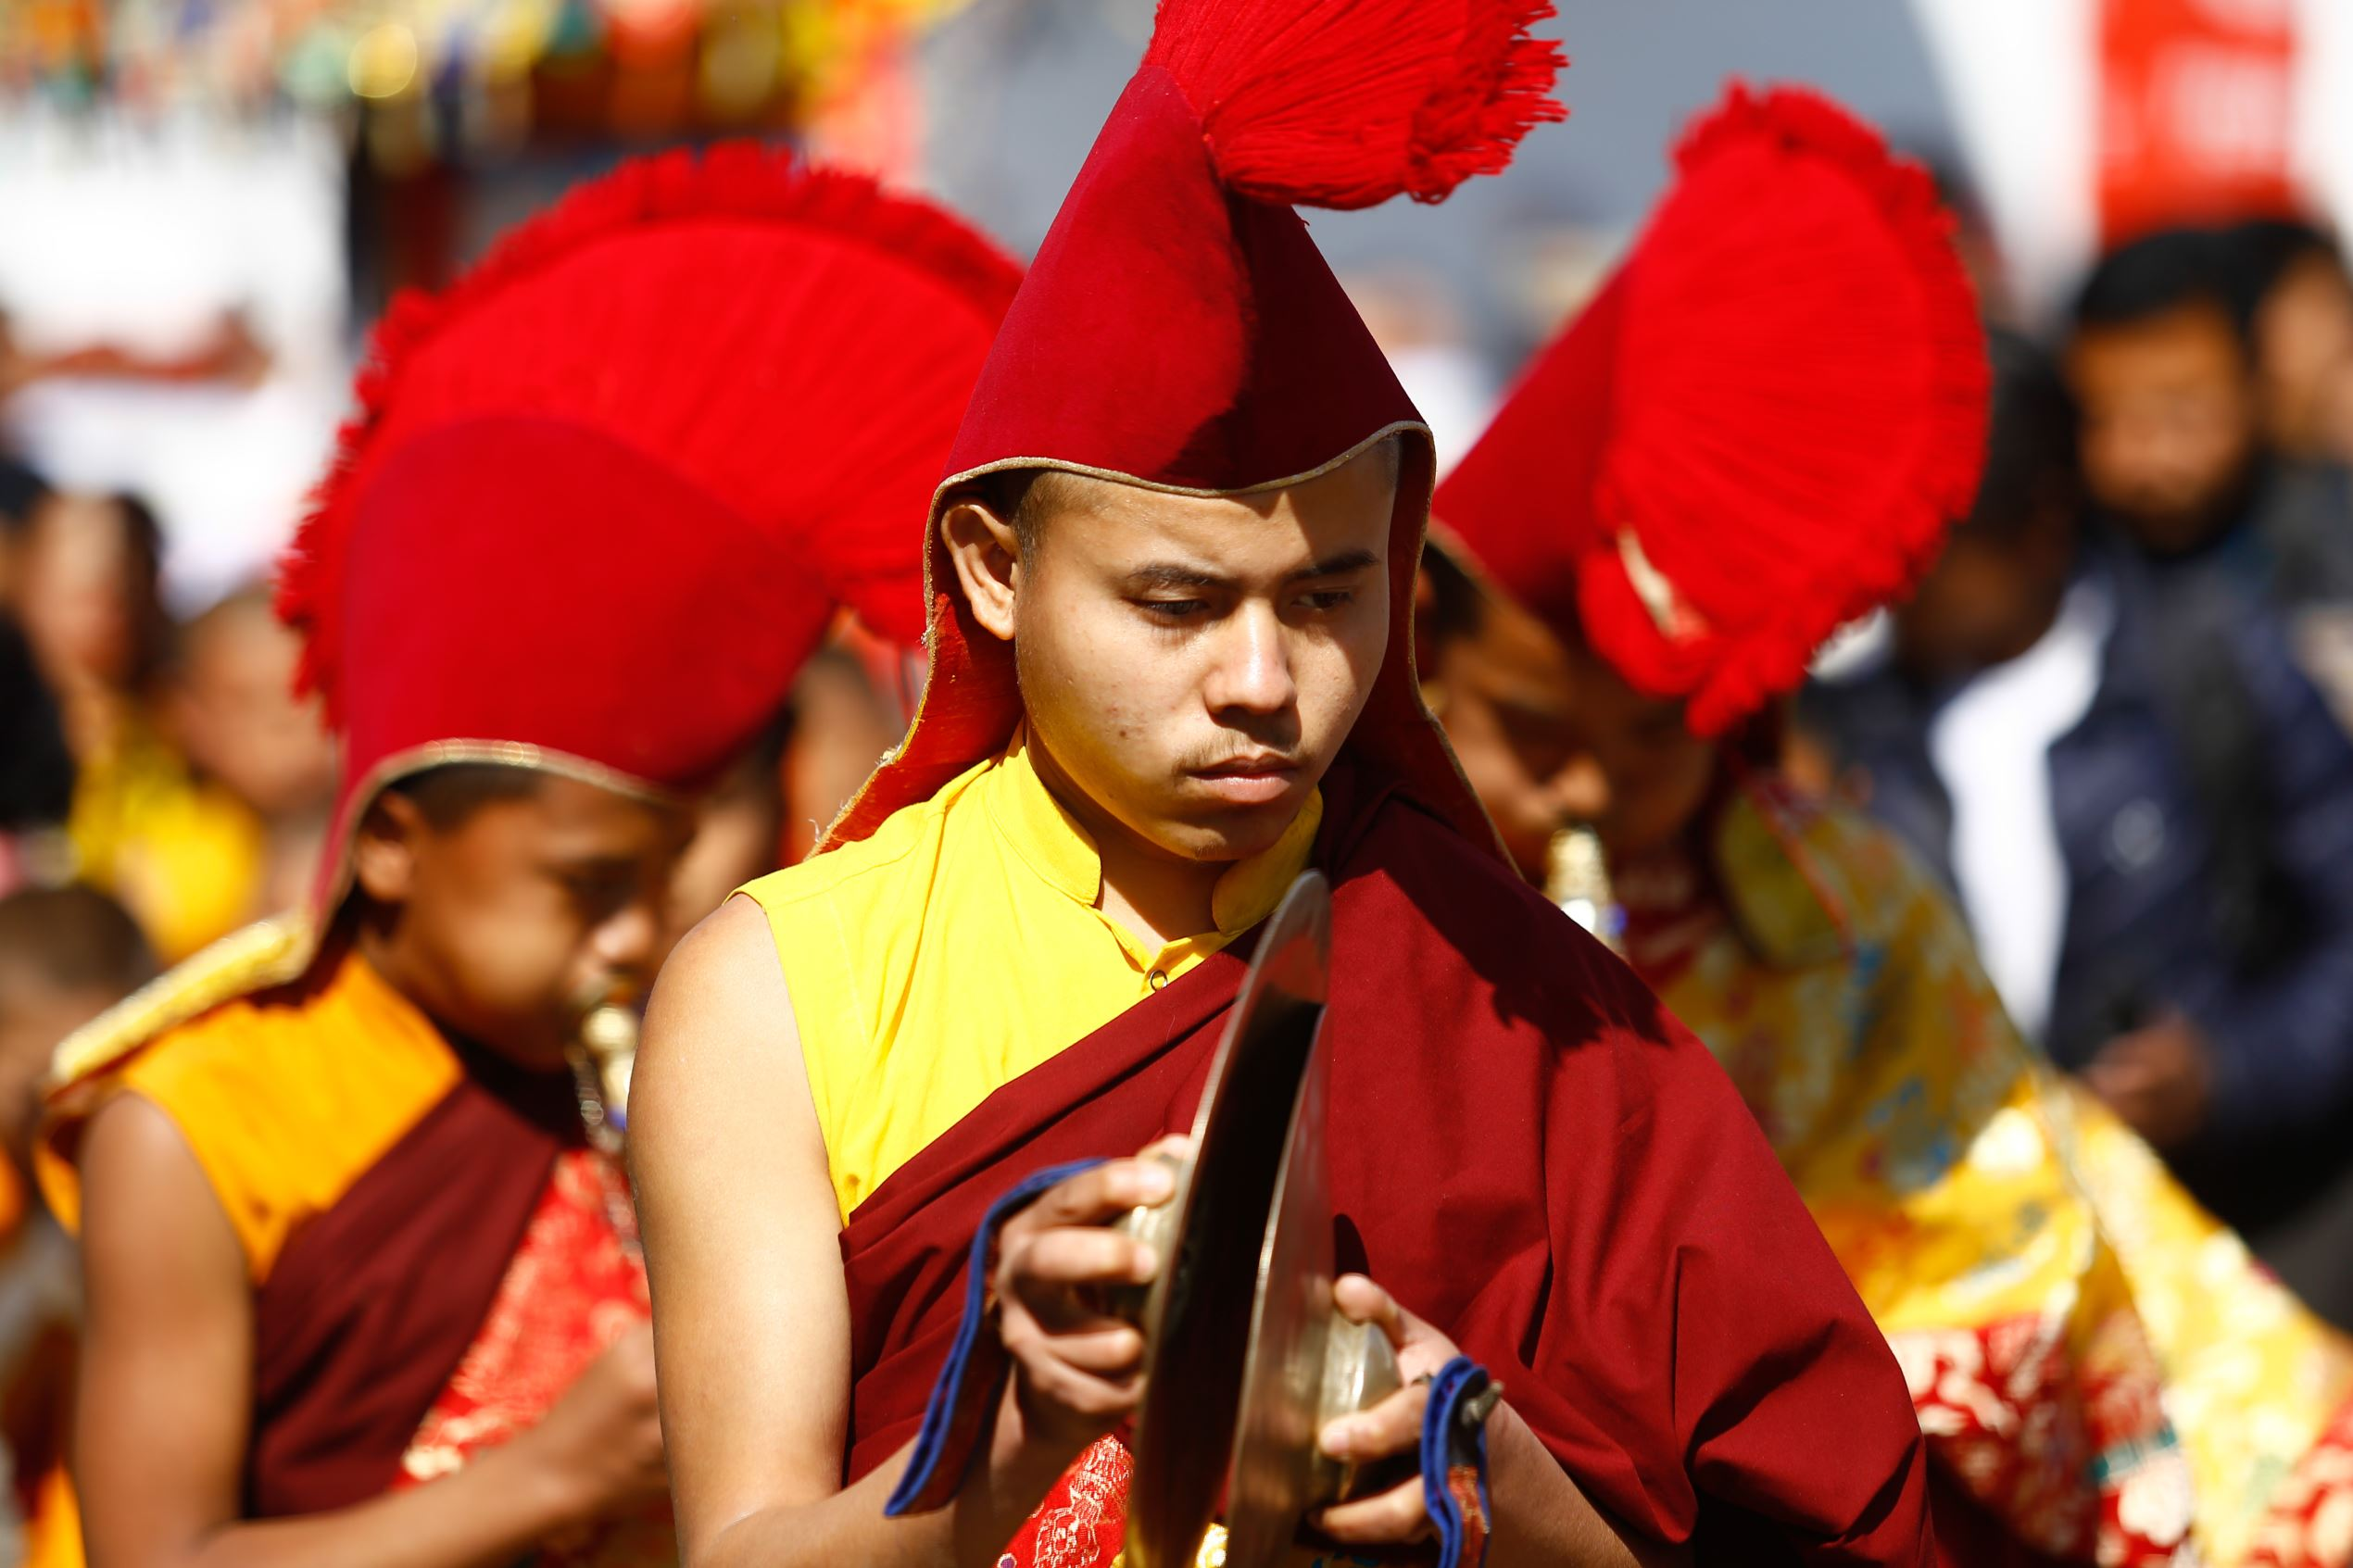 Buddhist monk in festival attire participate in the rally to mark Sonam Losar or Lunar New Year in Kathmandu, Nepal, January 28, 2017. (Photo by Sunil Pradhan/NurPhoto via Getty Images)